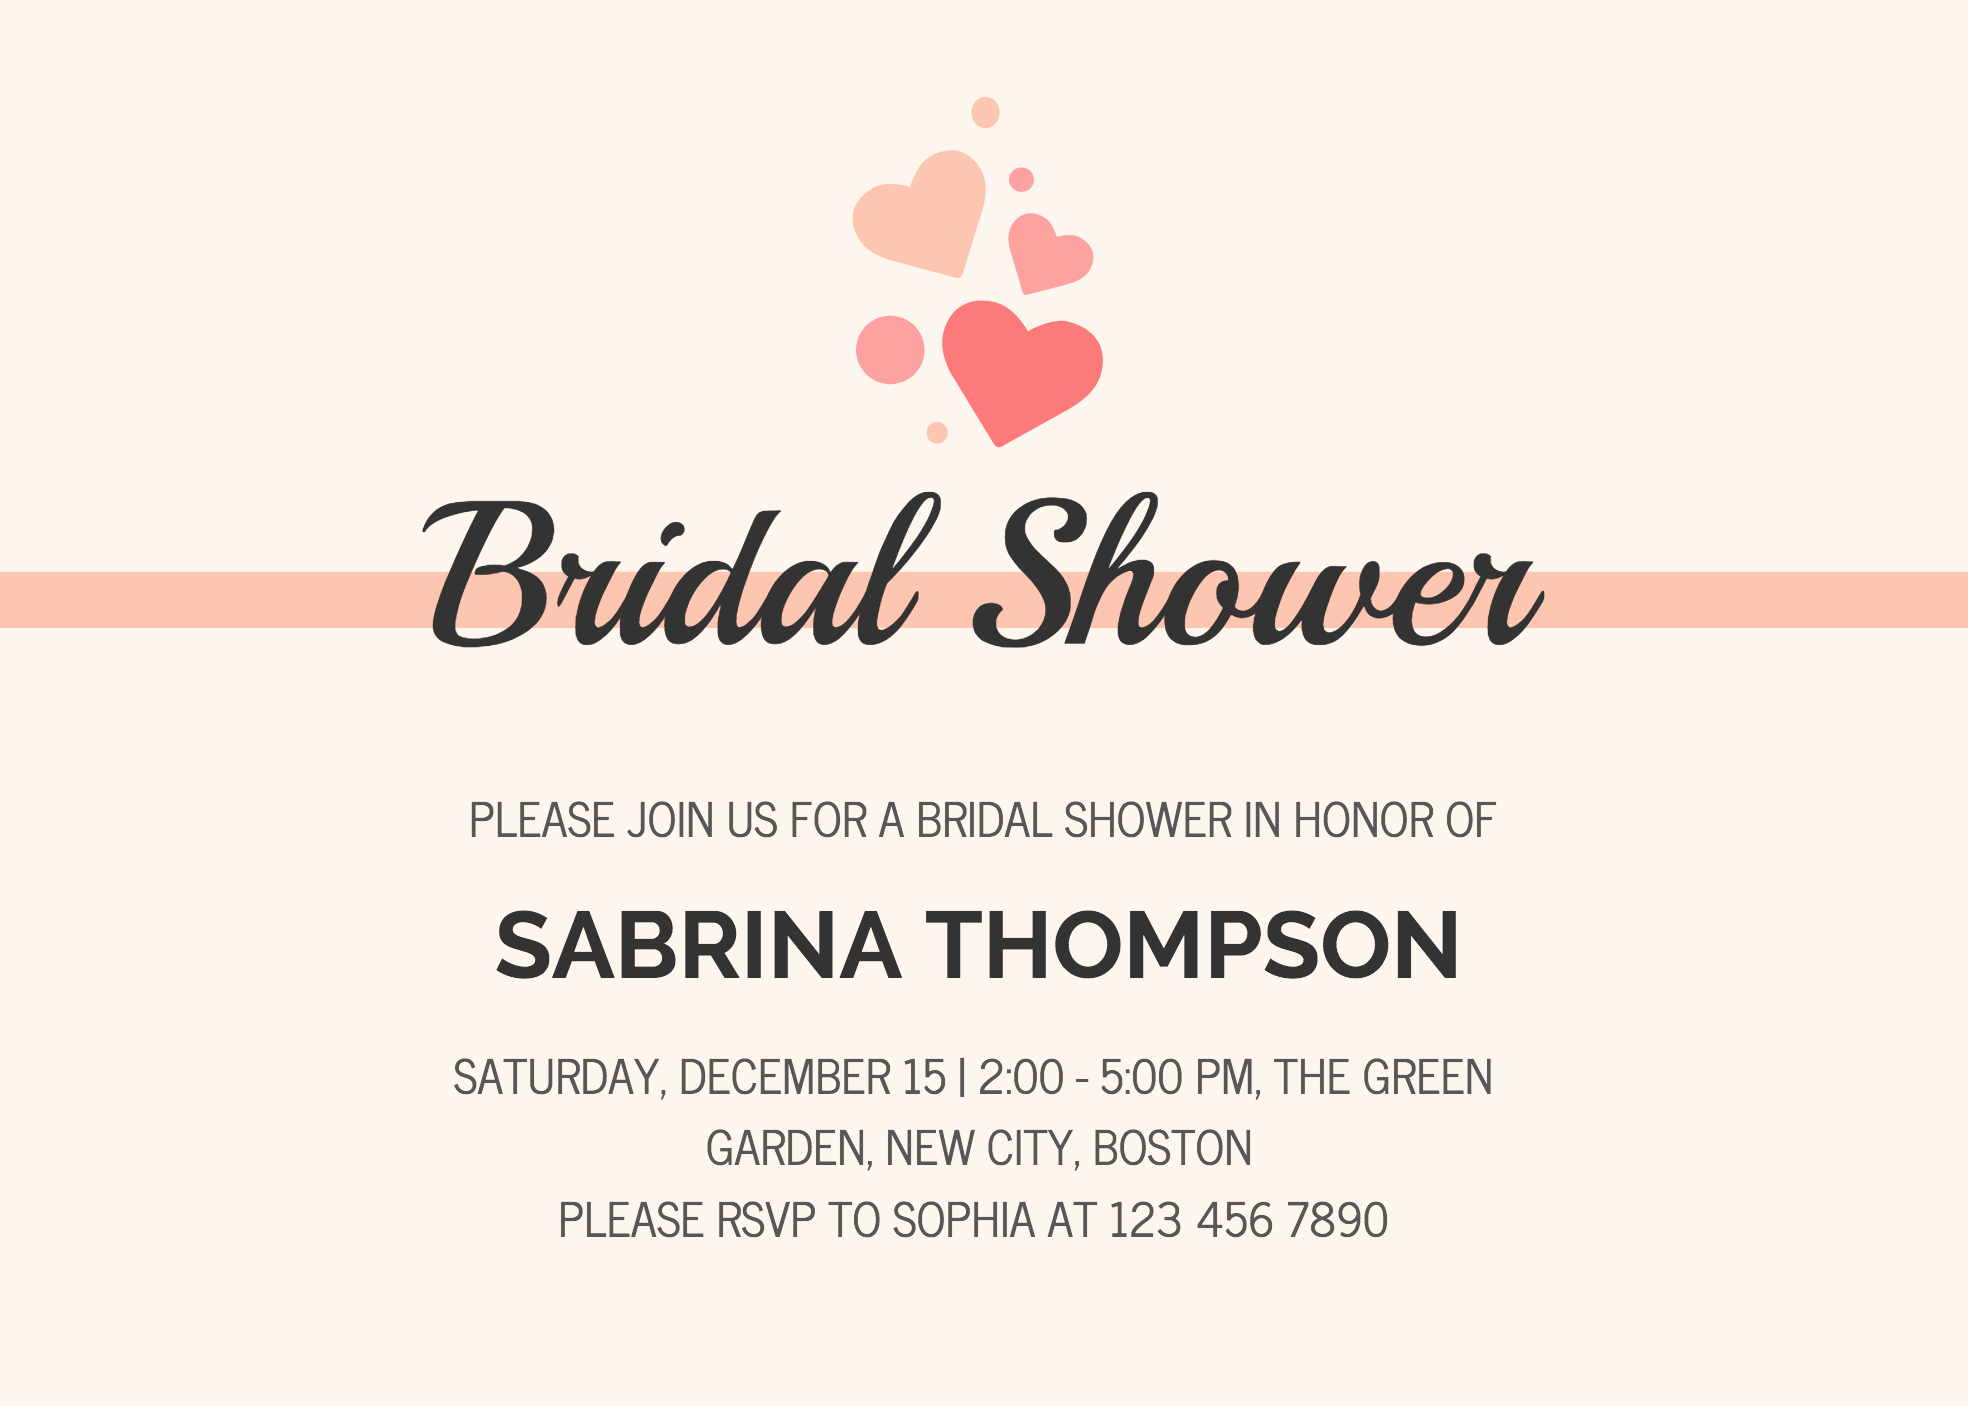 Bridal Shower Invite Template Fresh 19 Diy Bridal Shower and Wedding Invitation Templates